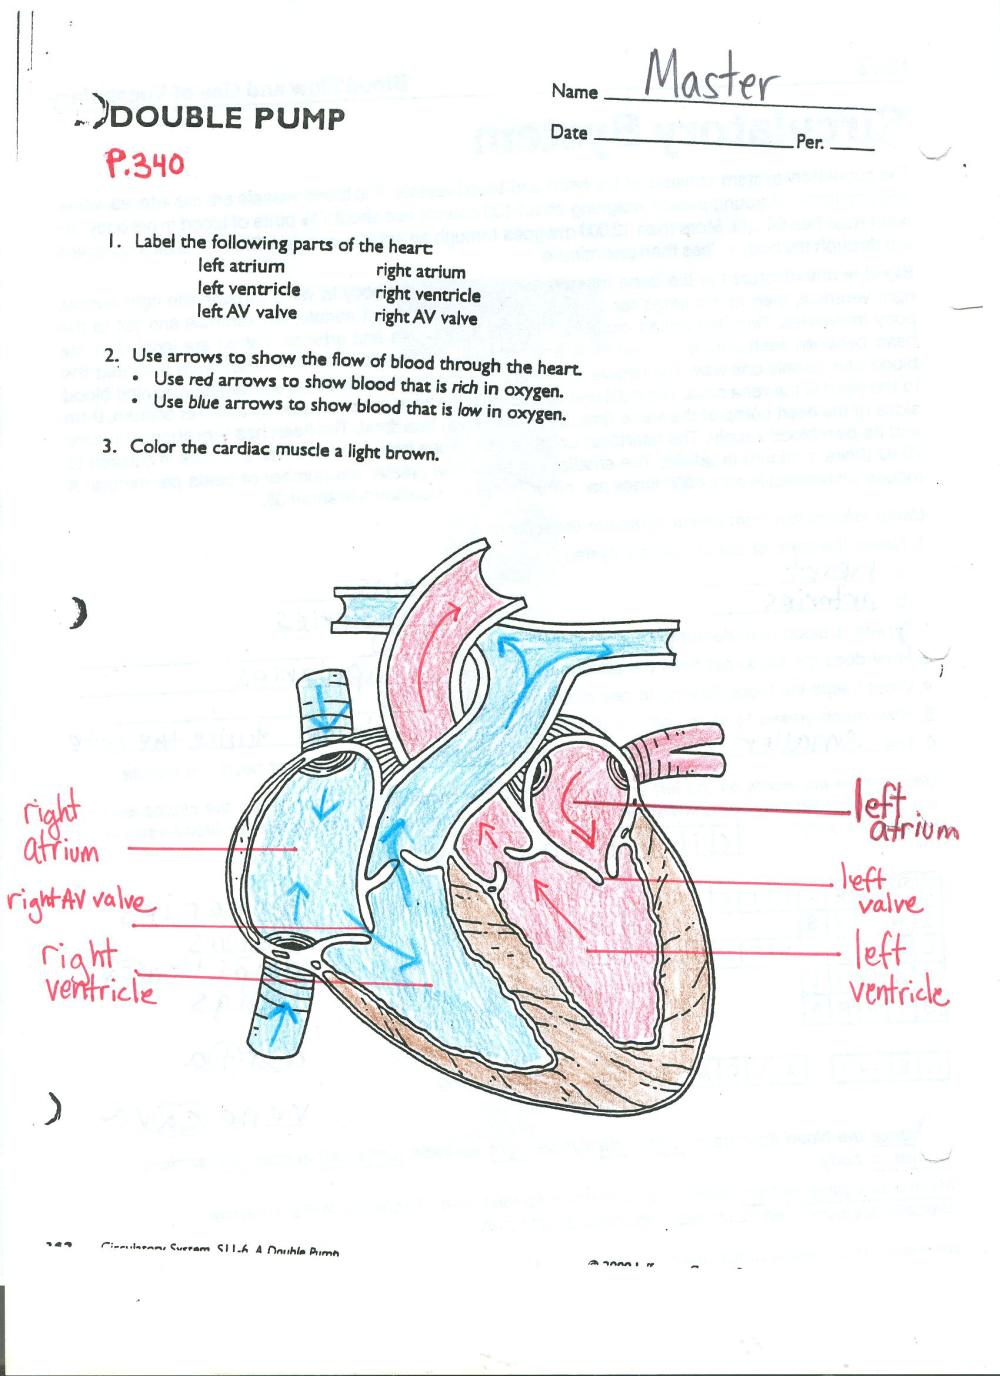 medium resolution of click here to access a completed version of the internal anatomy of the heart diagram